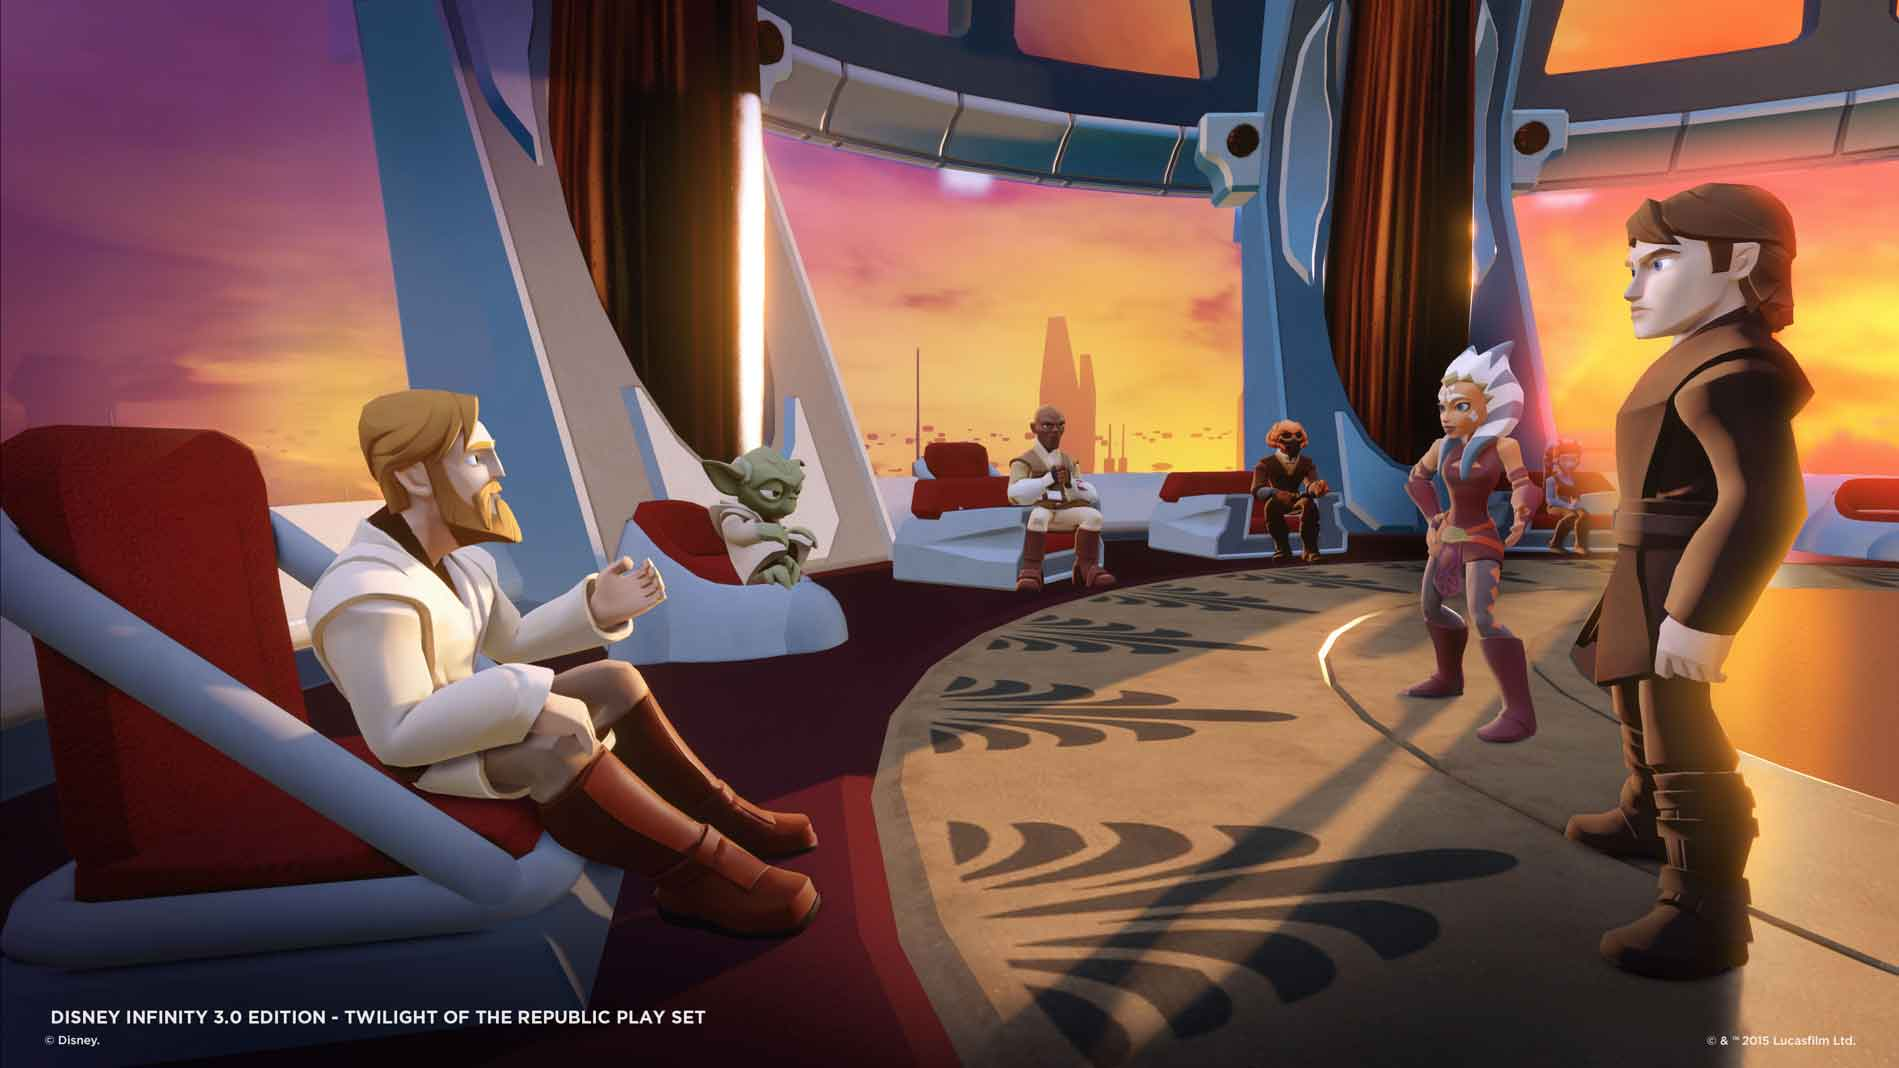 Star Wars Trailer Espn >> Disney Infinity 3.0 Twilight of the Republic Play Set High-Res Screens and New Details - TheHDRoom